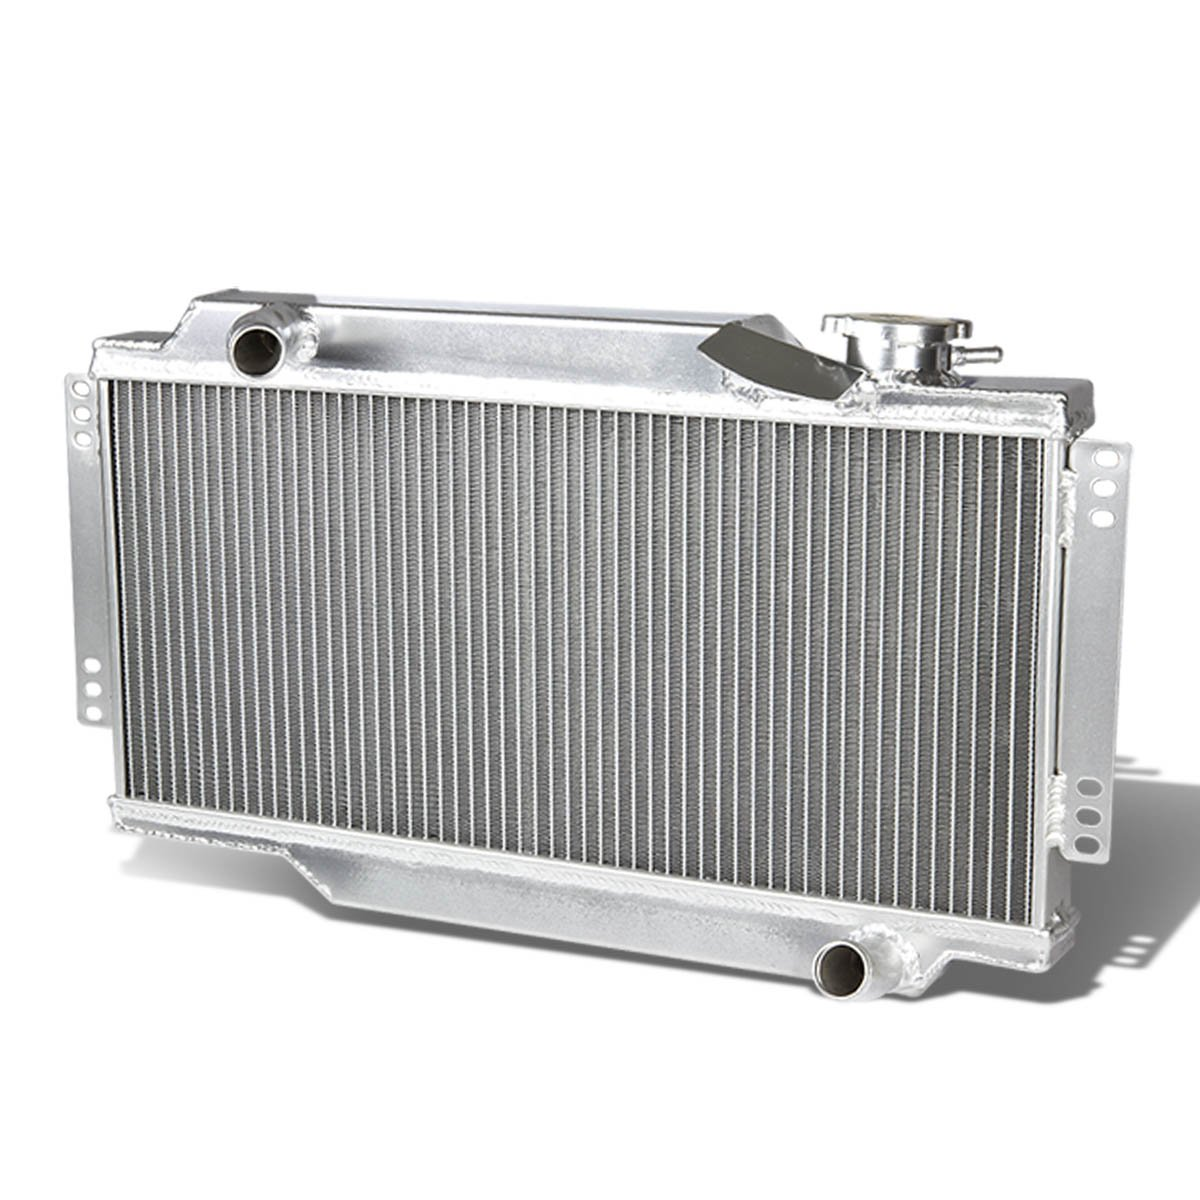 For Triumph Spitfire Full Aluminum 2-Row Racing Radiator - Mark III IV 3 4 Auto Dynasty